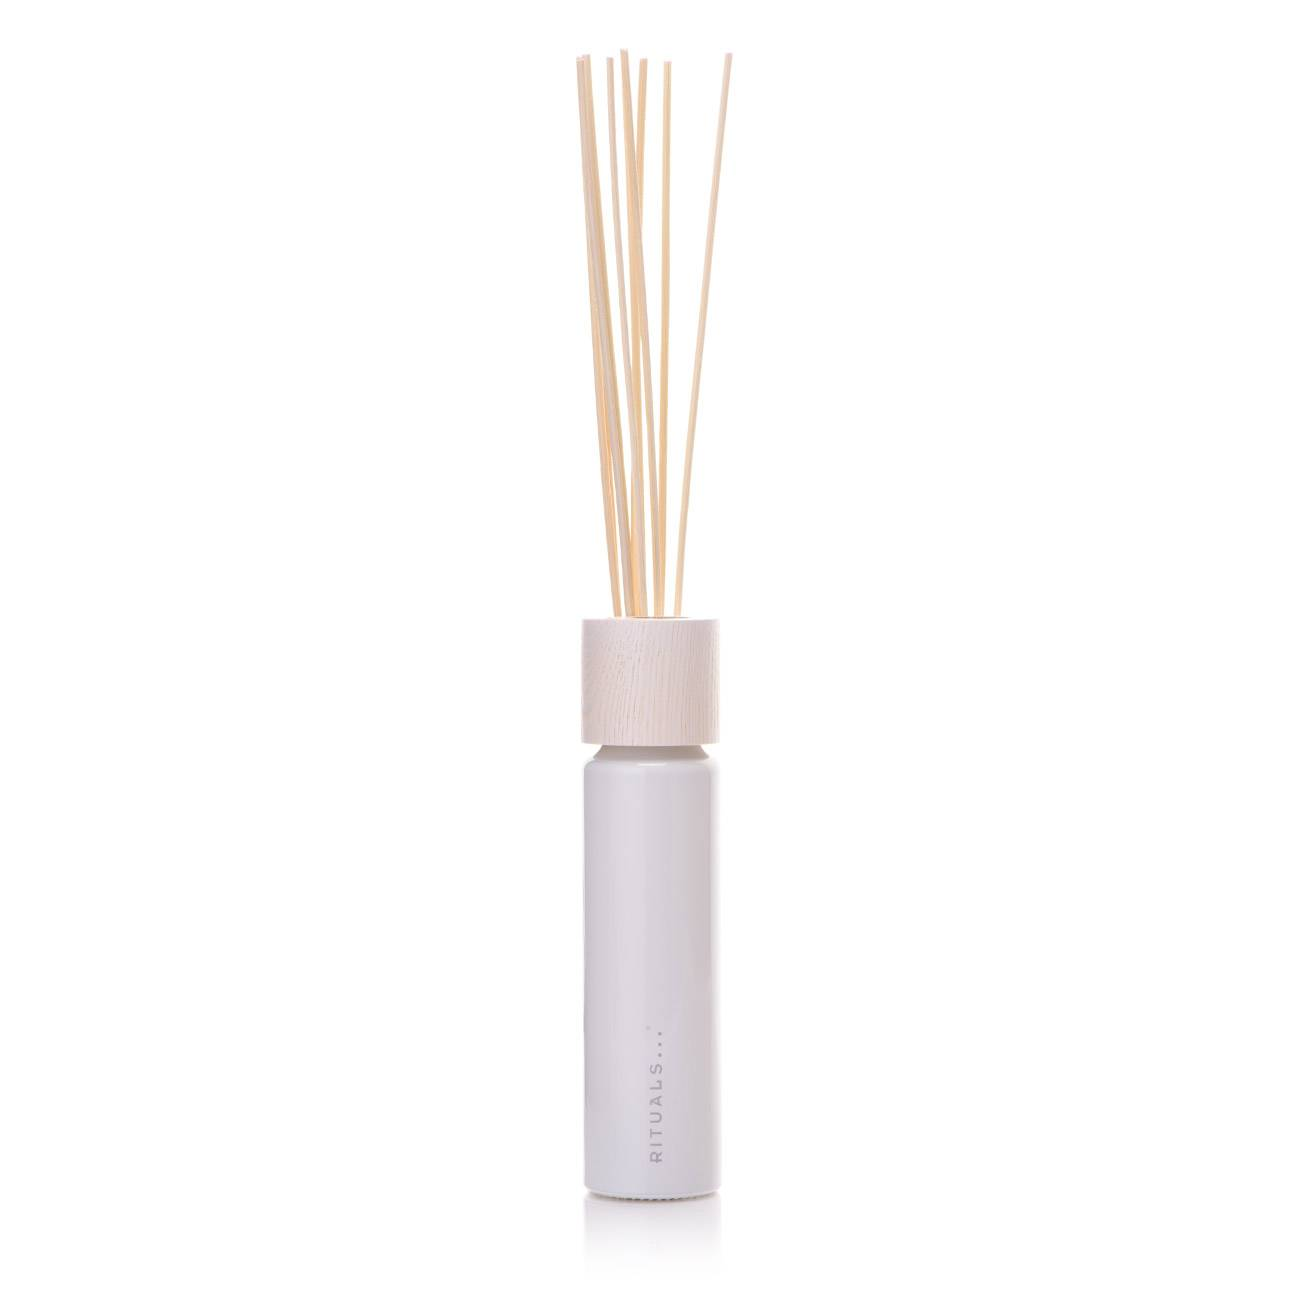 SAKURA FRAGRANCE STICKS 230 ML 230 Ml imagine produs